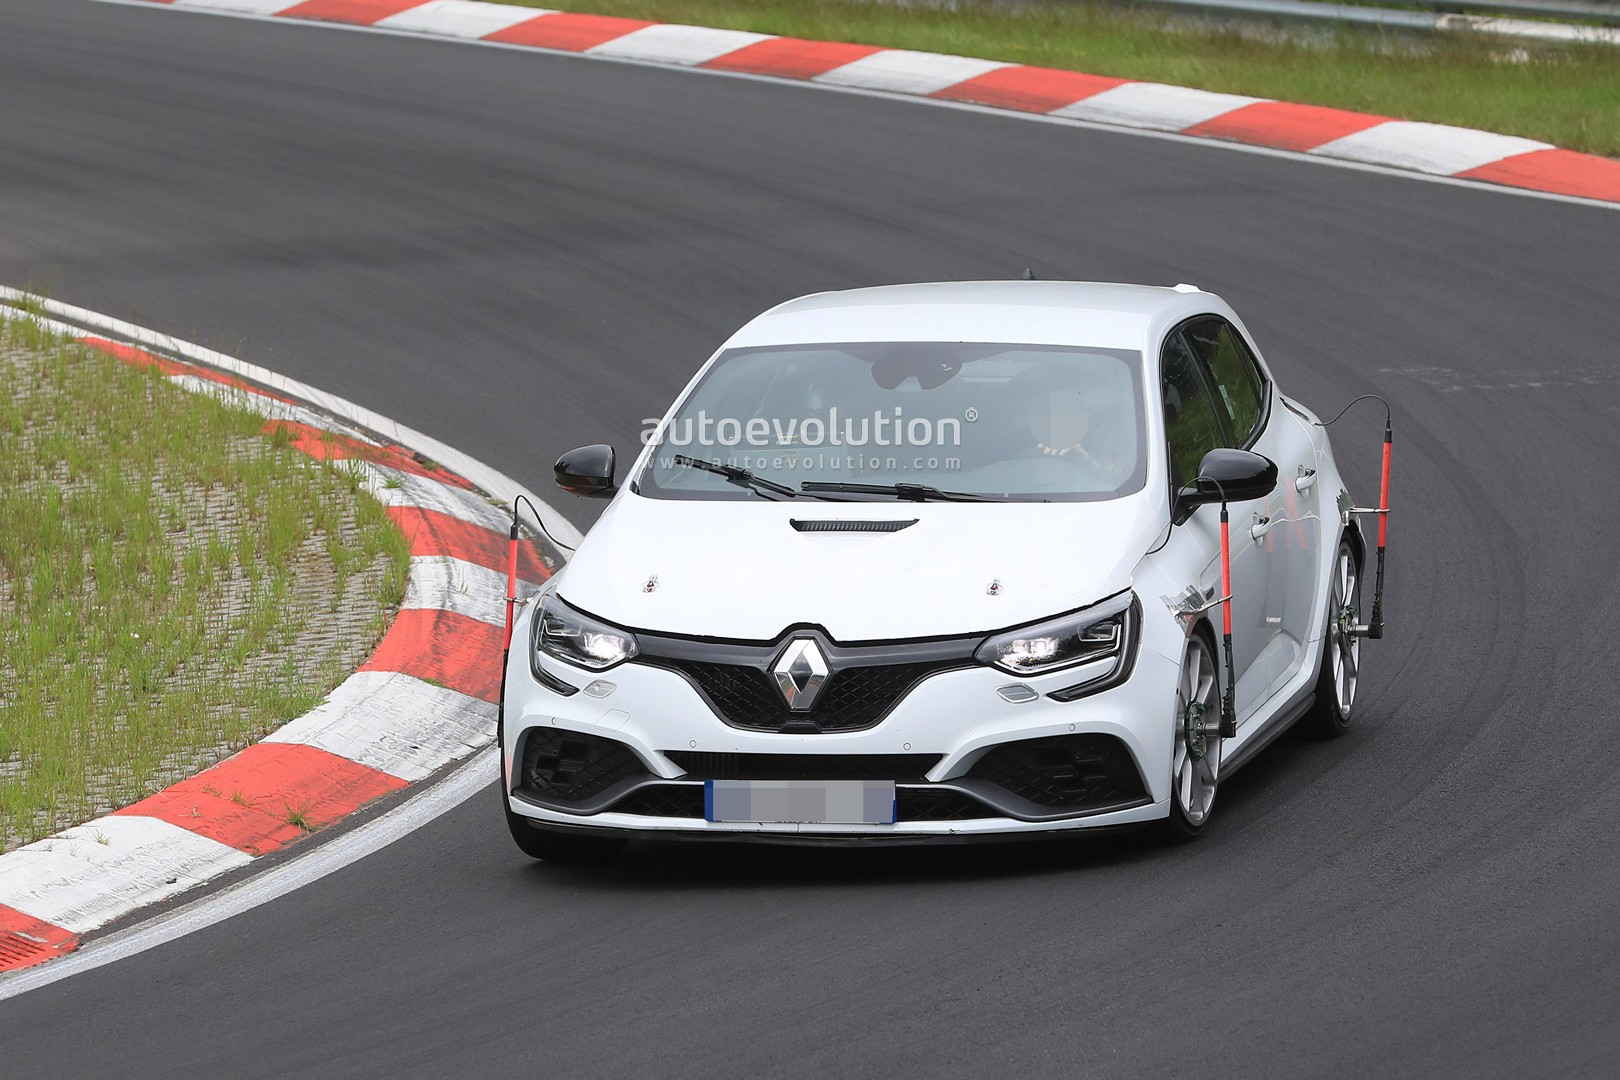 https://s1.cdn.autoevolution.com/images/news/new-megane-rs-trophy-spied-at-the-nurburgring-with-vented-hood-no-rear-seats-126514_1.jpg